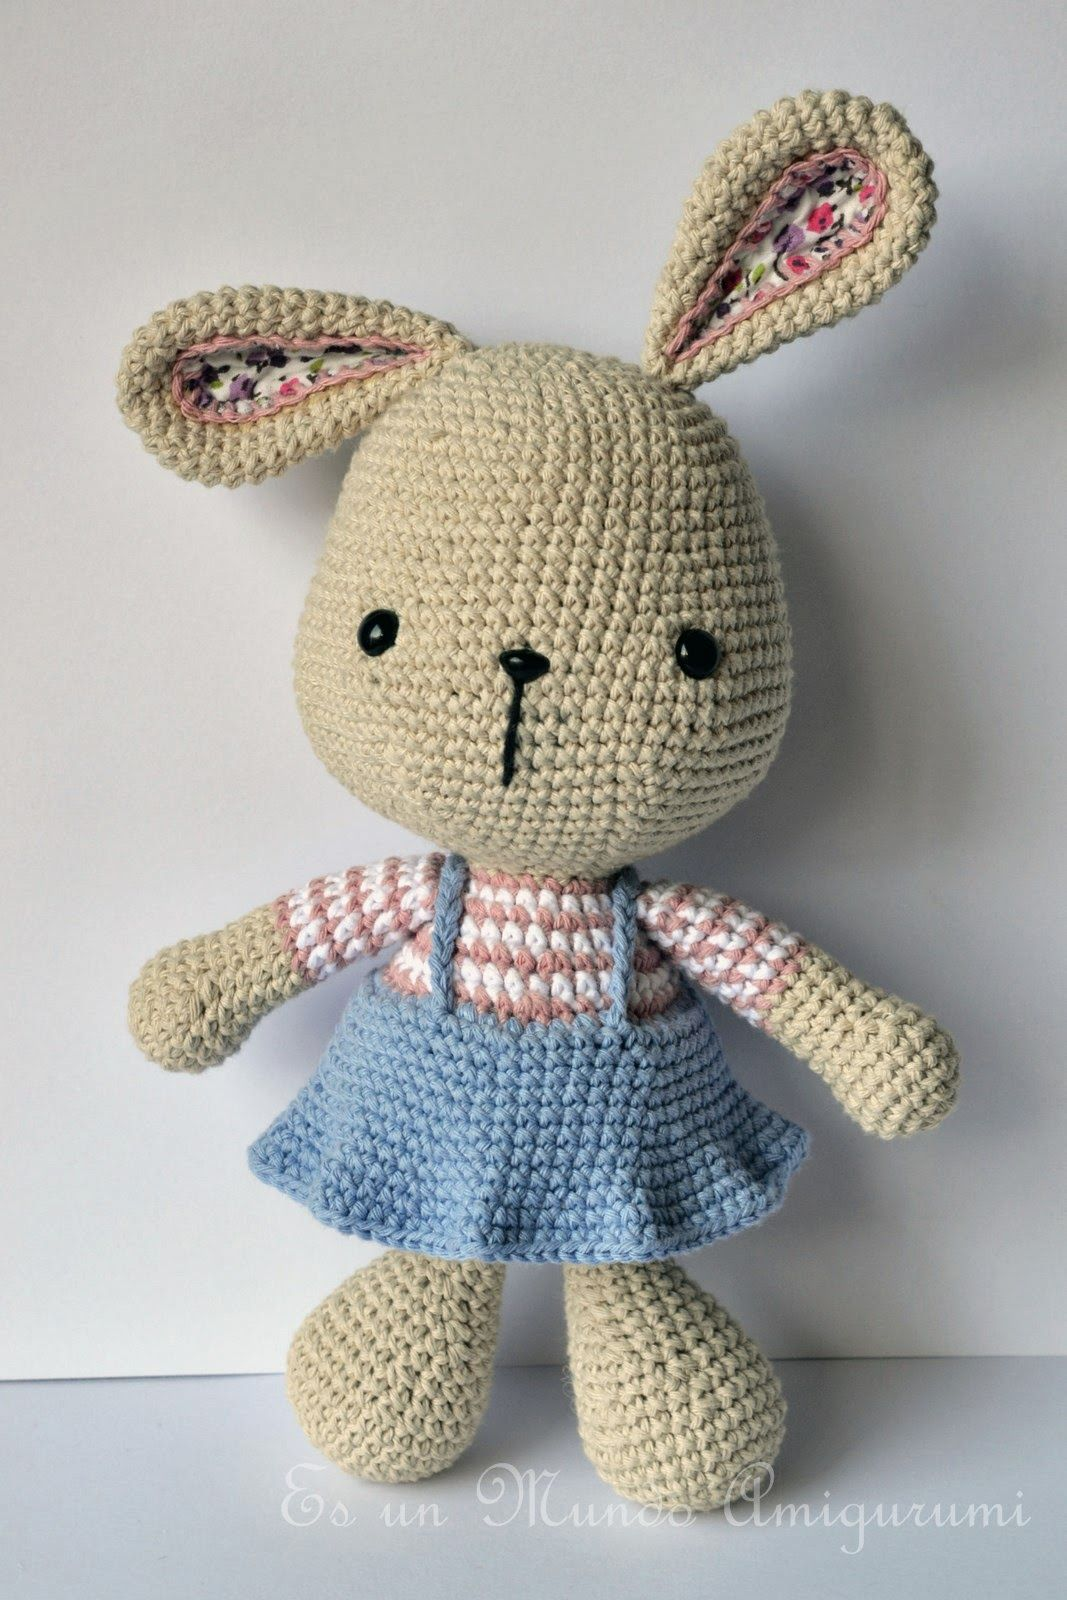 It is a Amigurumi World: Large Easter Bunny ... so cute. pattern for ...